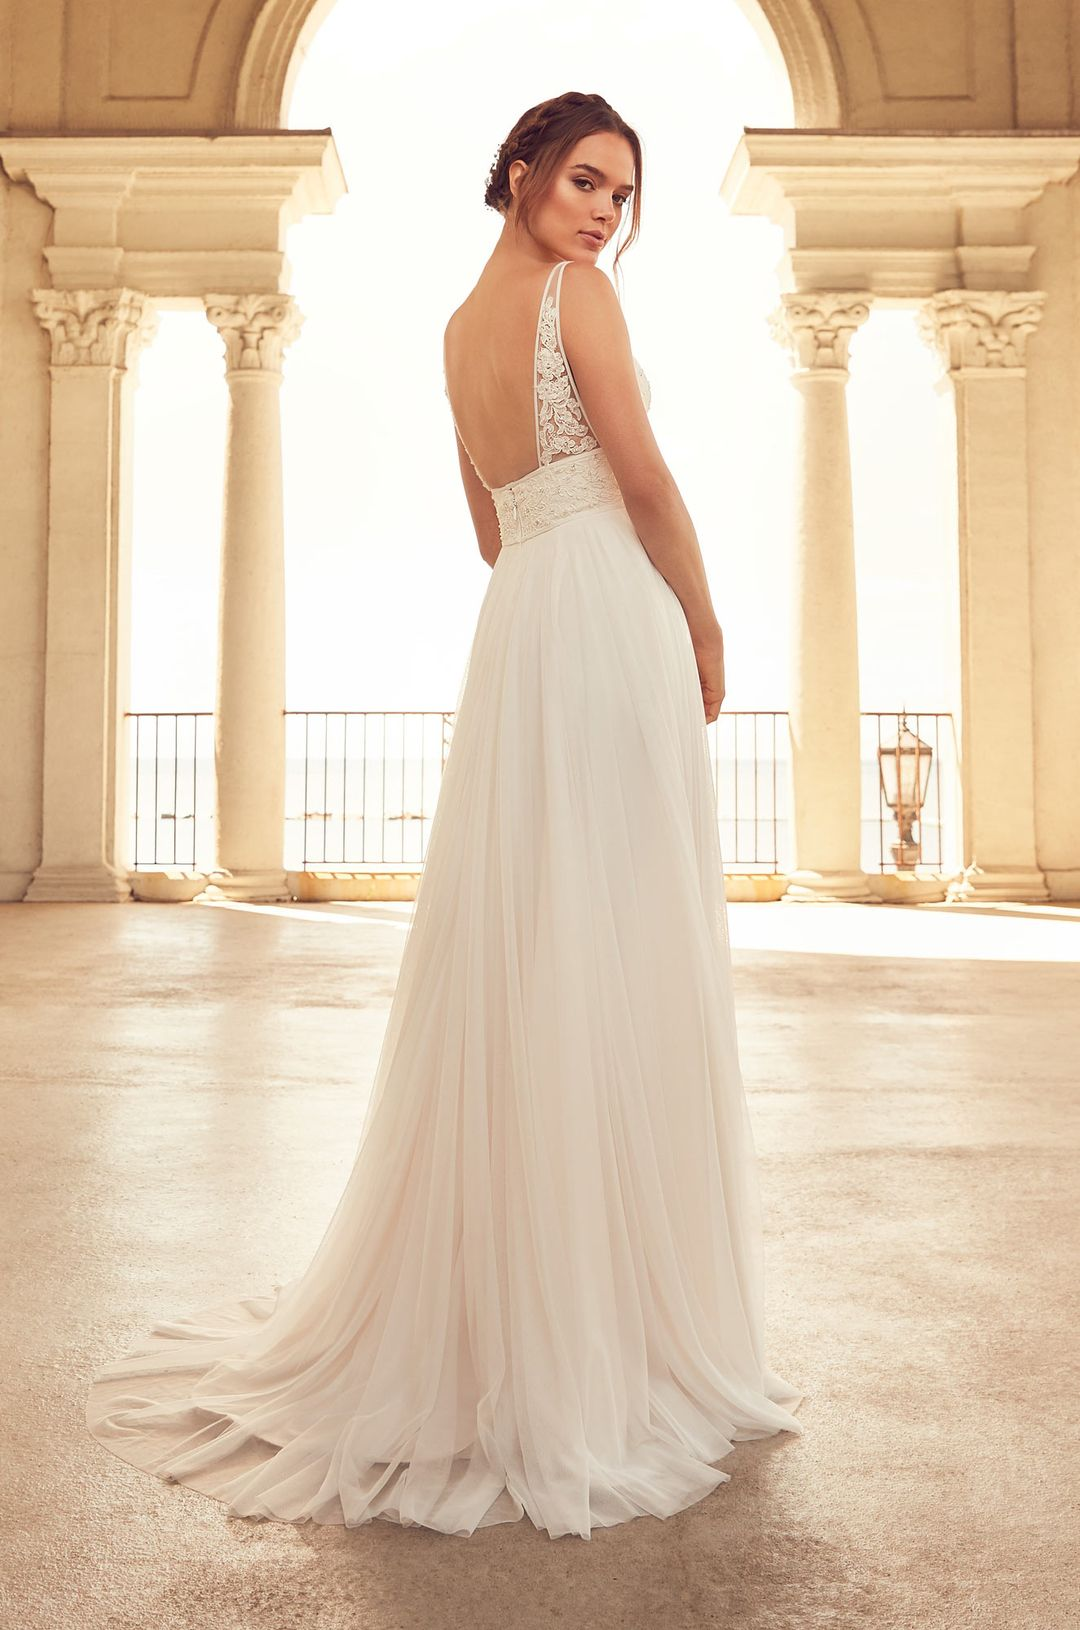 9202d76d9f1 Flowing Empire Wedding Dress - Style  4787 from Paloma Blanca. V-neckline  bodice with beaded lace appliqués along bodice. Full Mesh Tulle skirt.